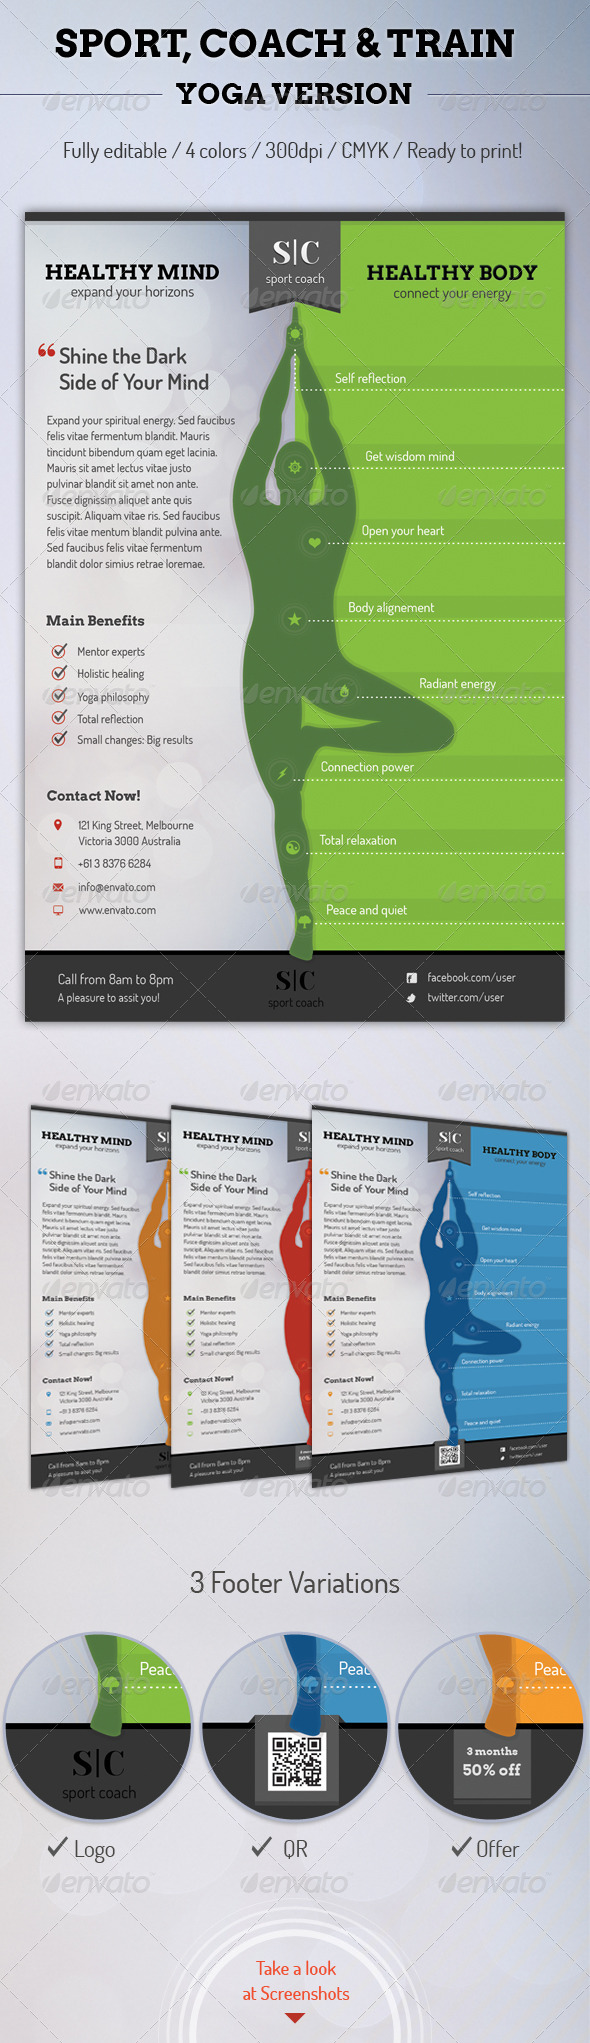 Sport Coach and Train Flyer - Yoga Version - Sports Events